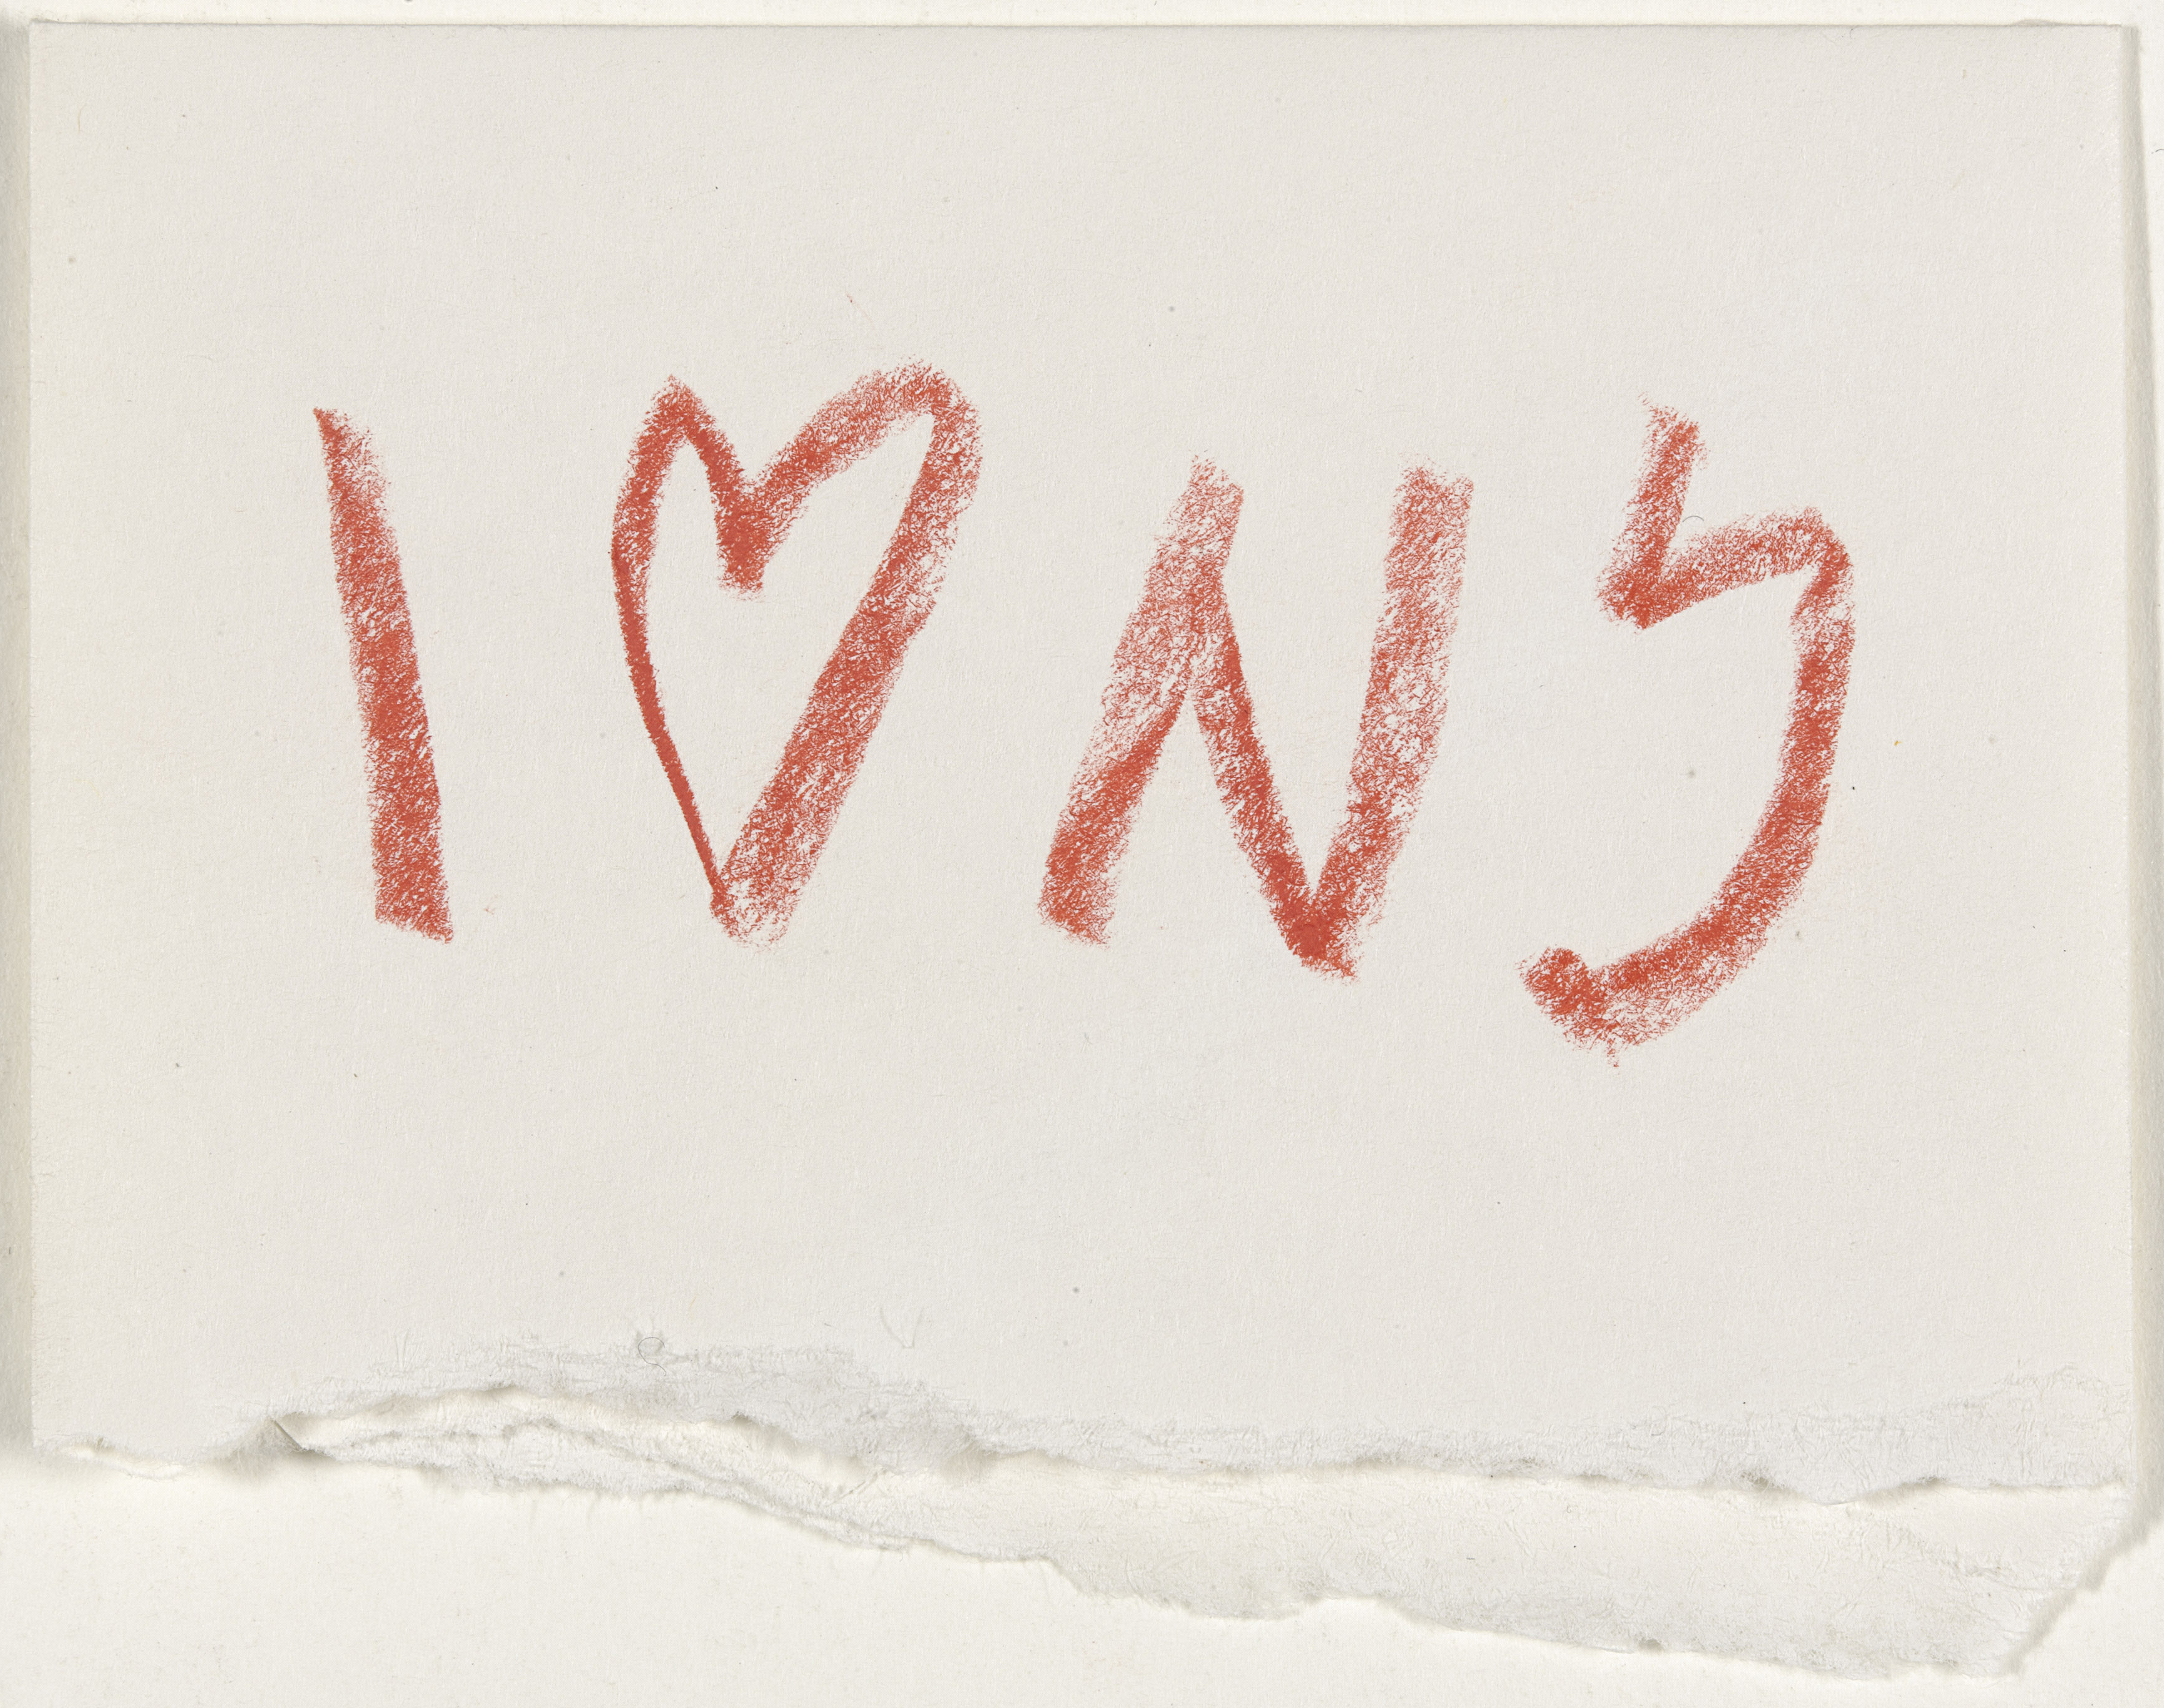 Glaser, Milton (b. 1929): I (Heart) NY concept sketch, 1976. New York, Museum of Modern Art (MoMA)